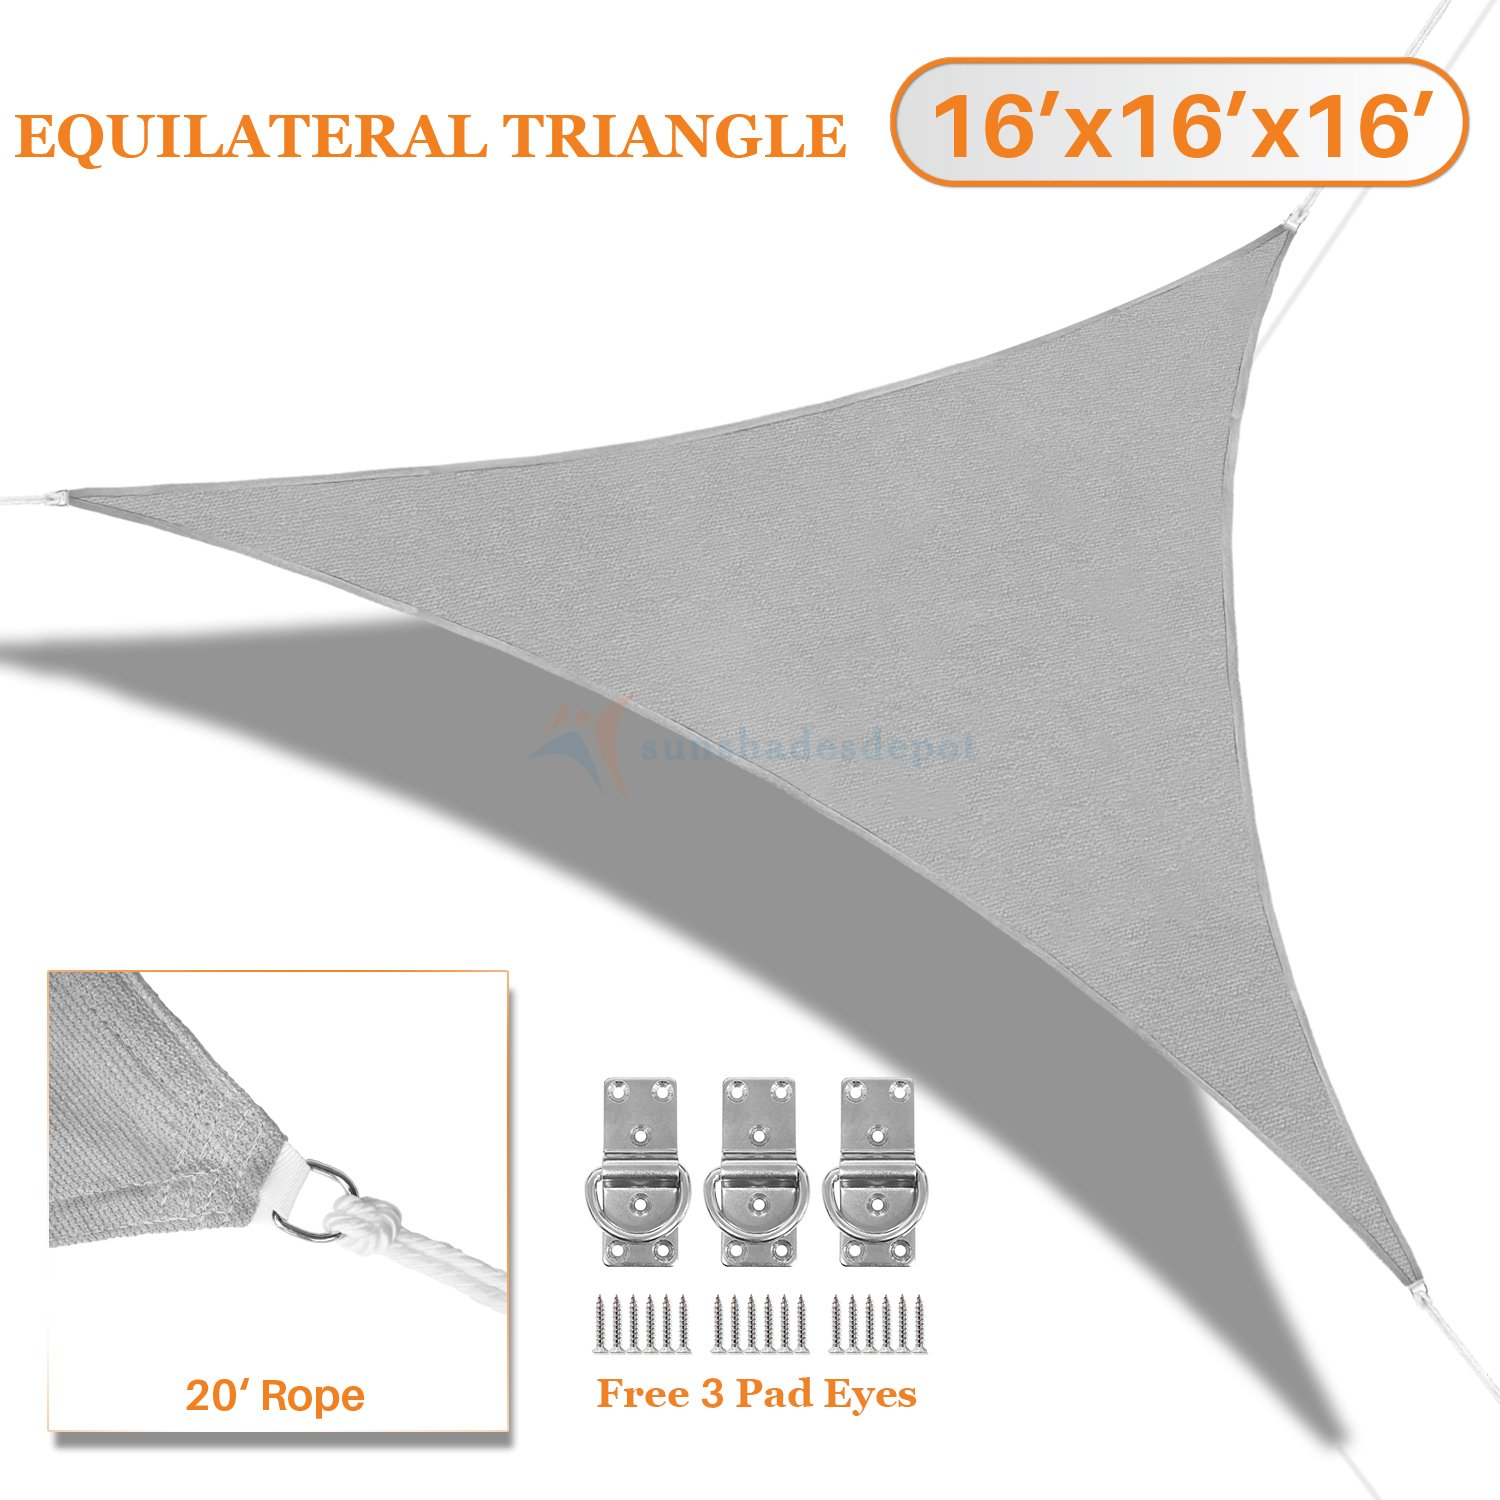 Sunshades Depot 16' x 16' x 16' Sun Shade Sail 180 GSM Equilateral Triangle Permeable Canopy Light Grey CustomSize Available Commercial Standard